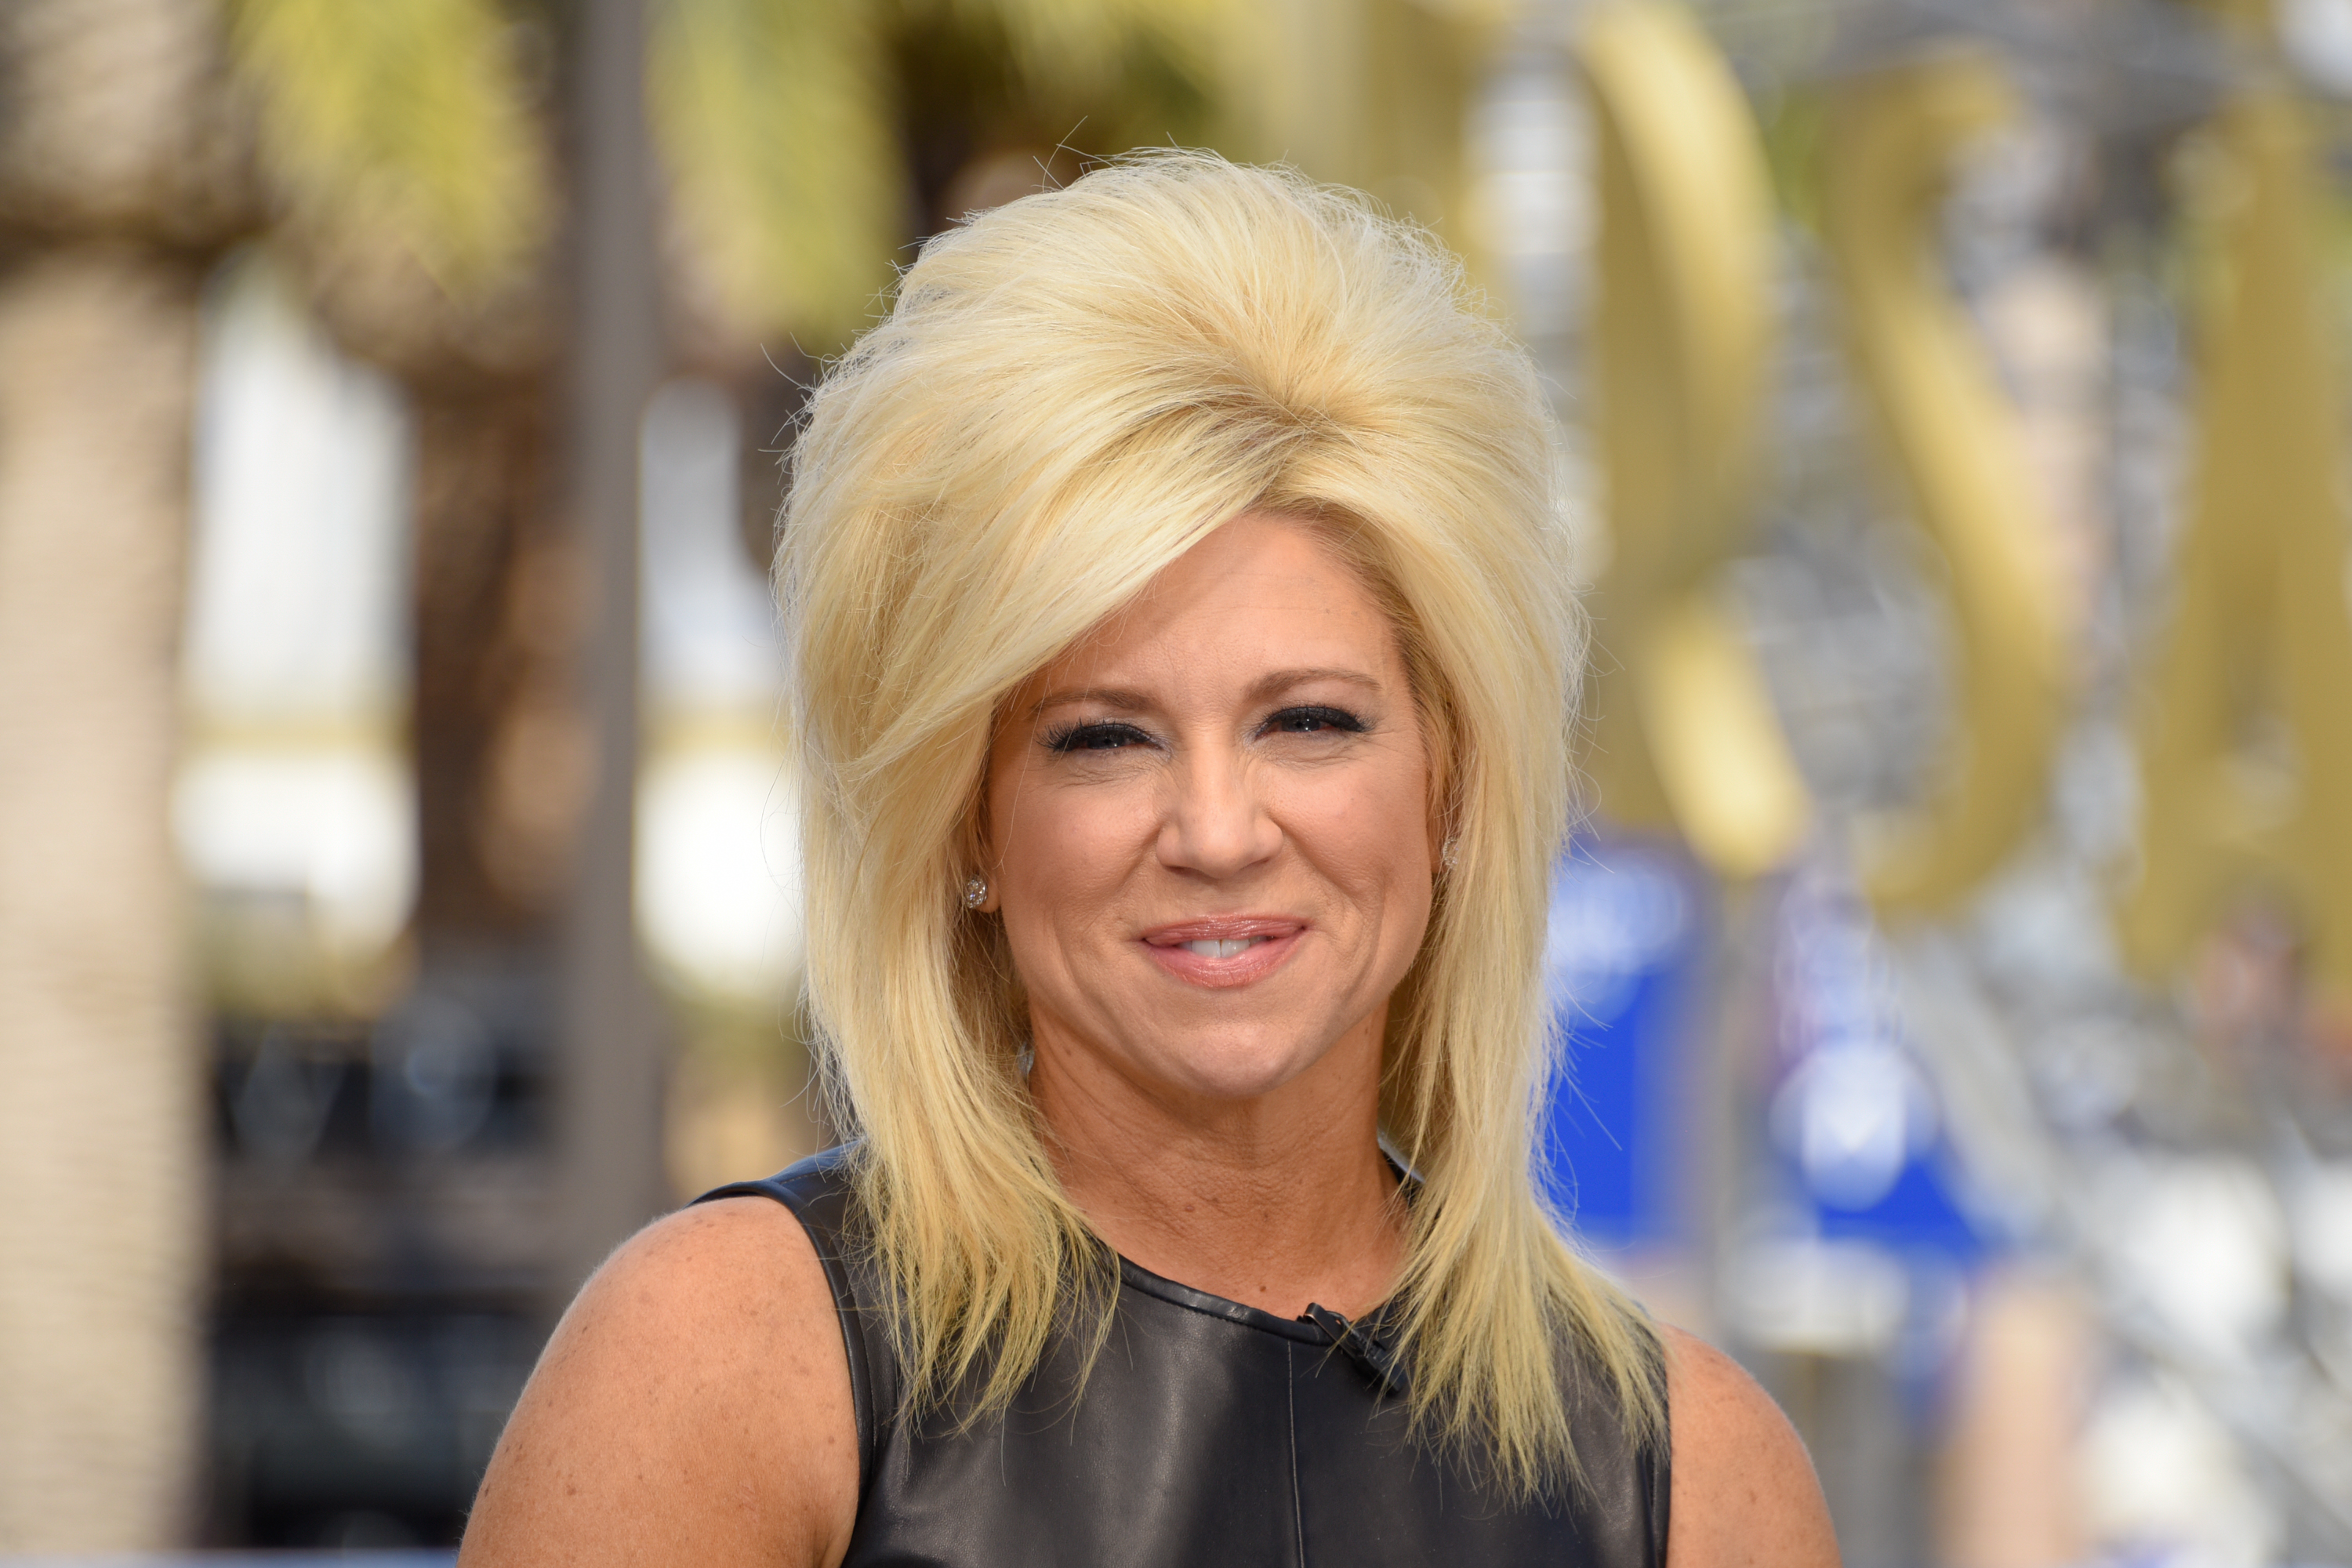 Theresa Caputo smiling for a picture